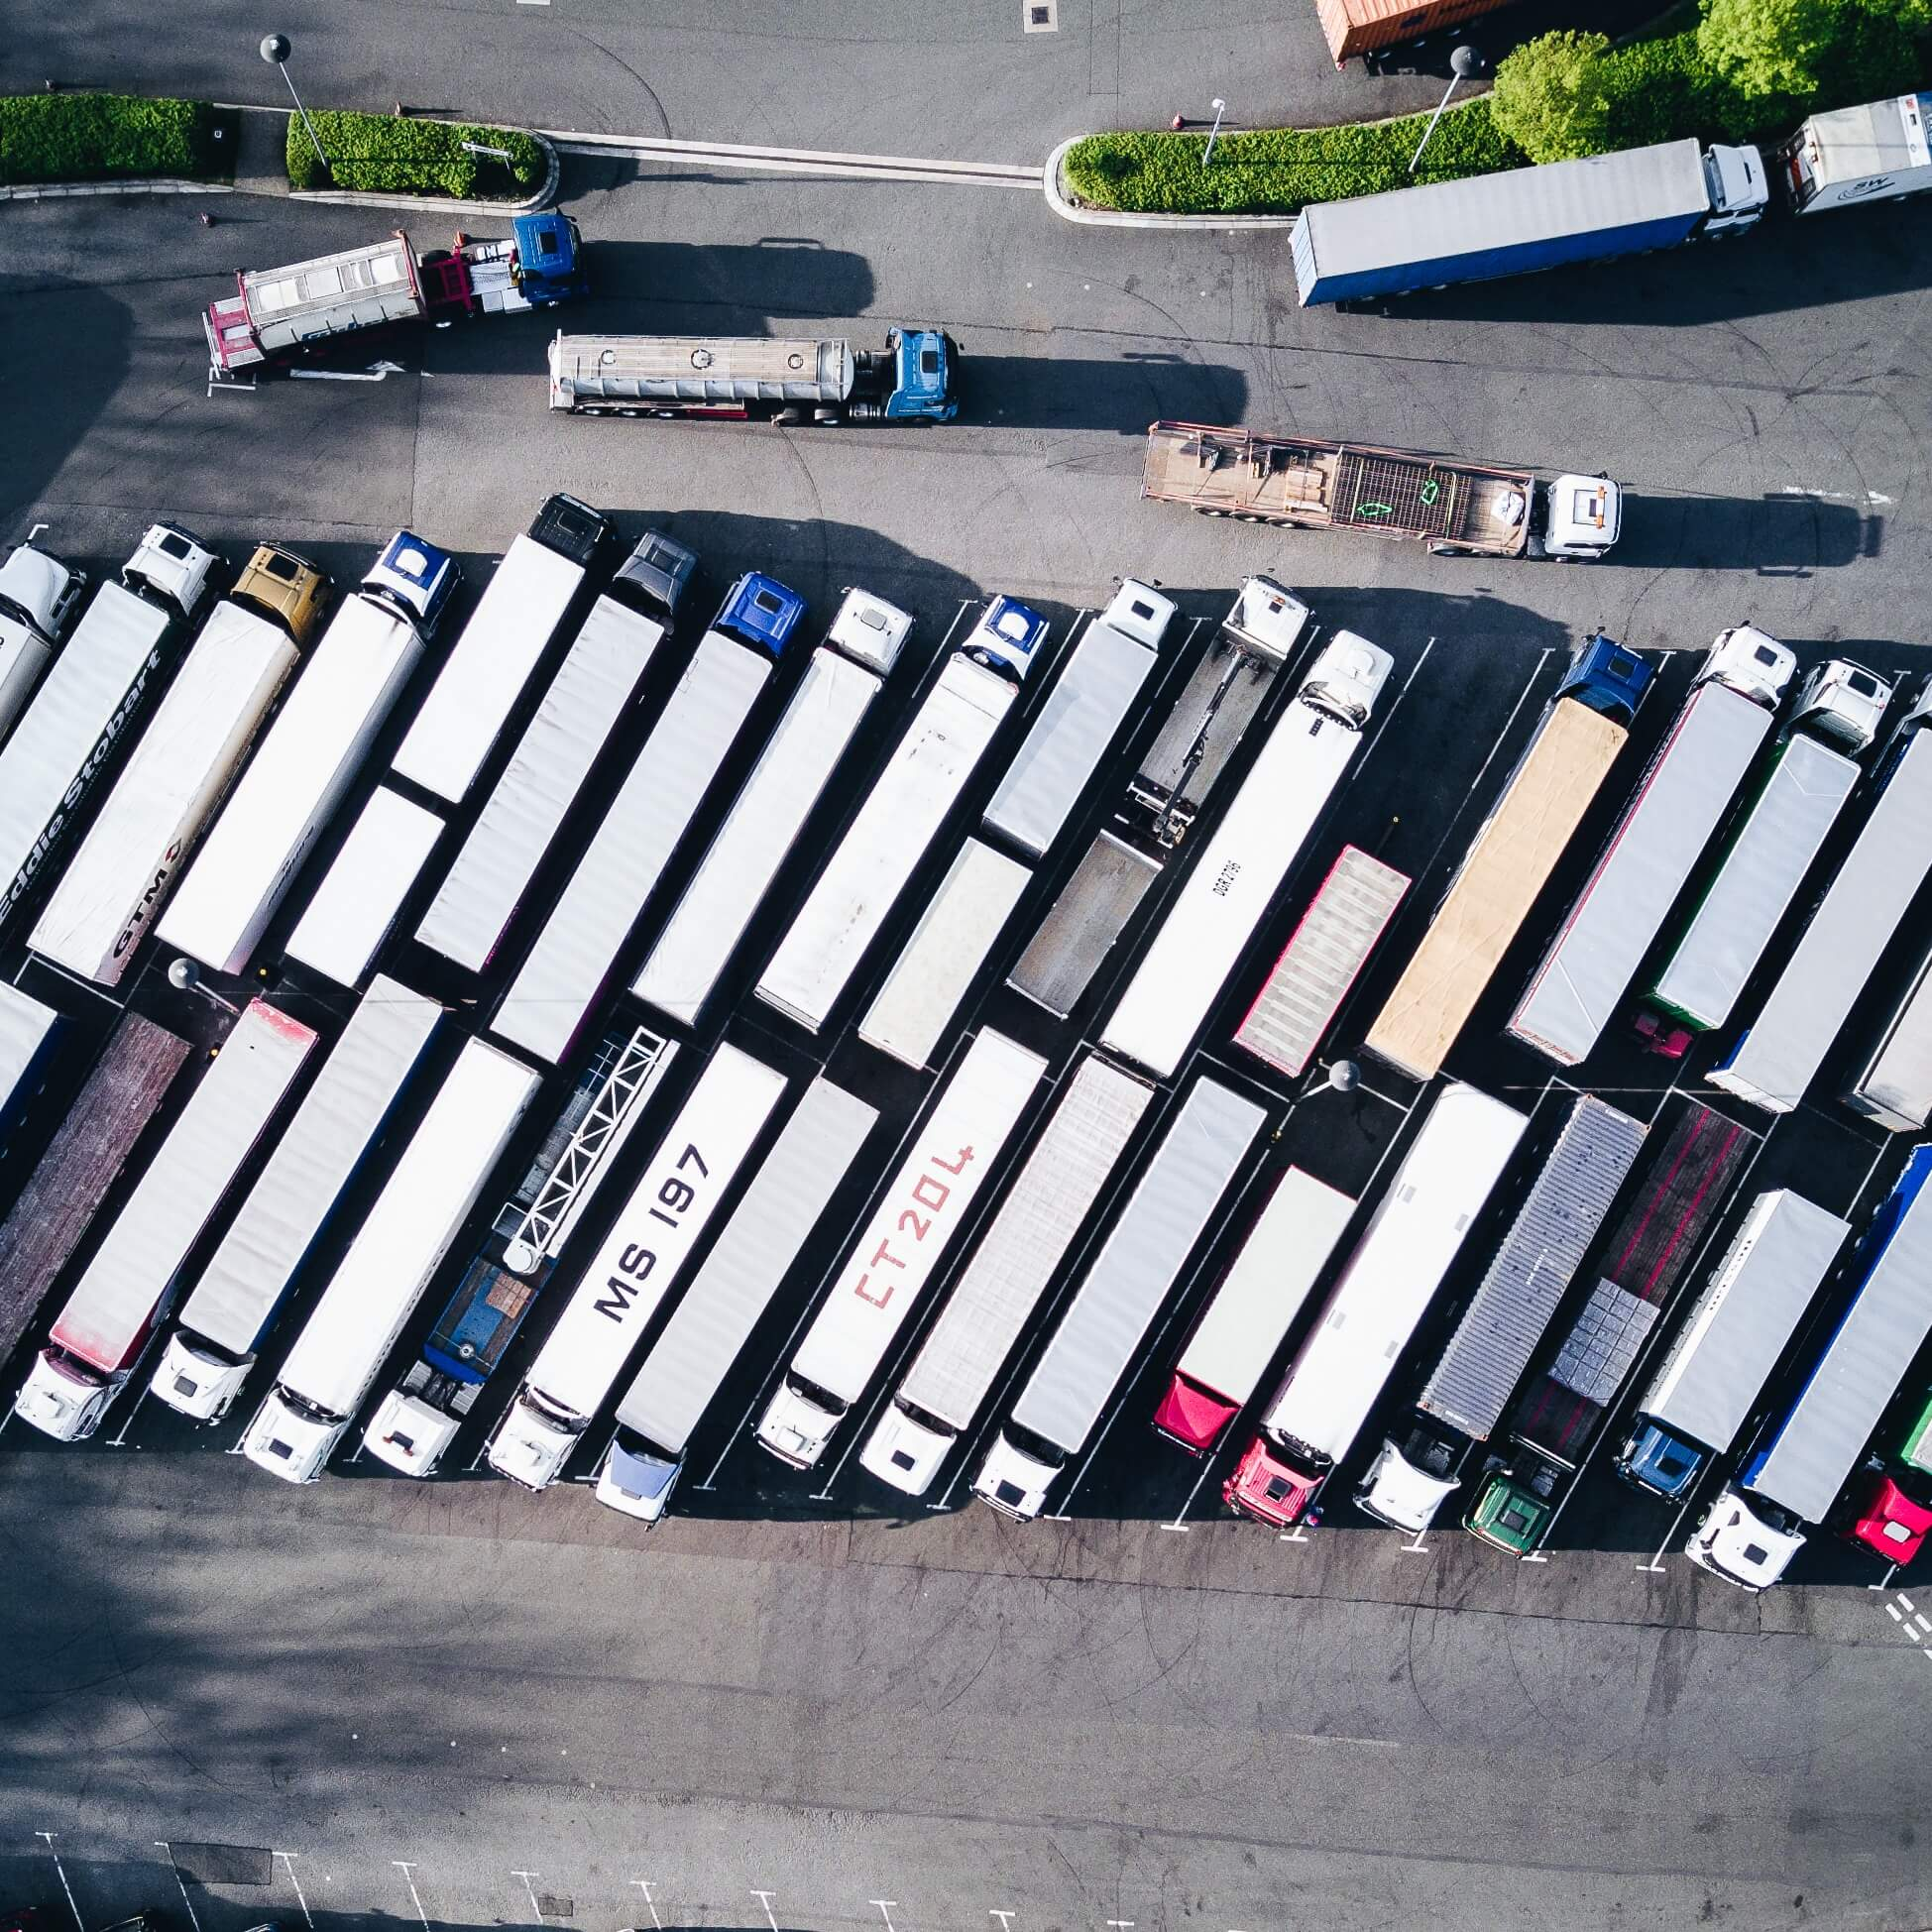 image of many hgvs top down view